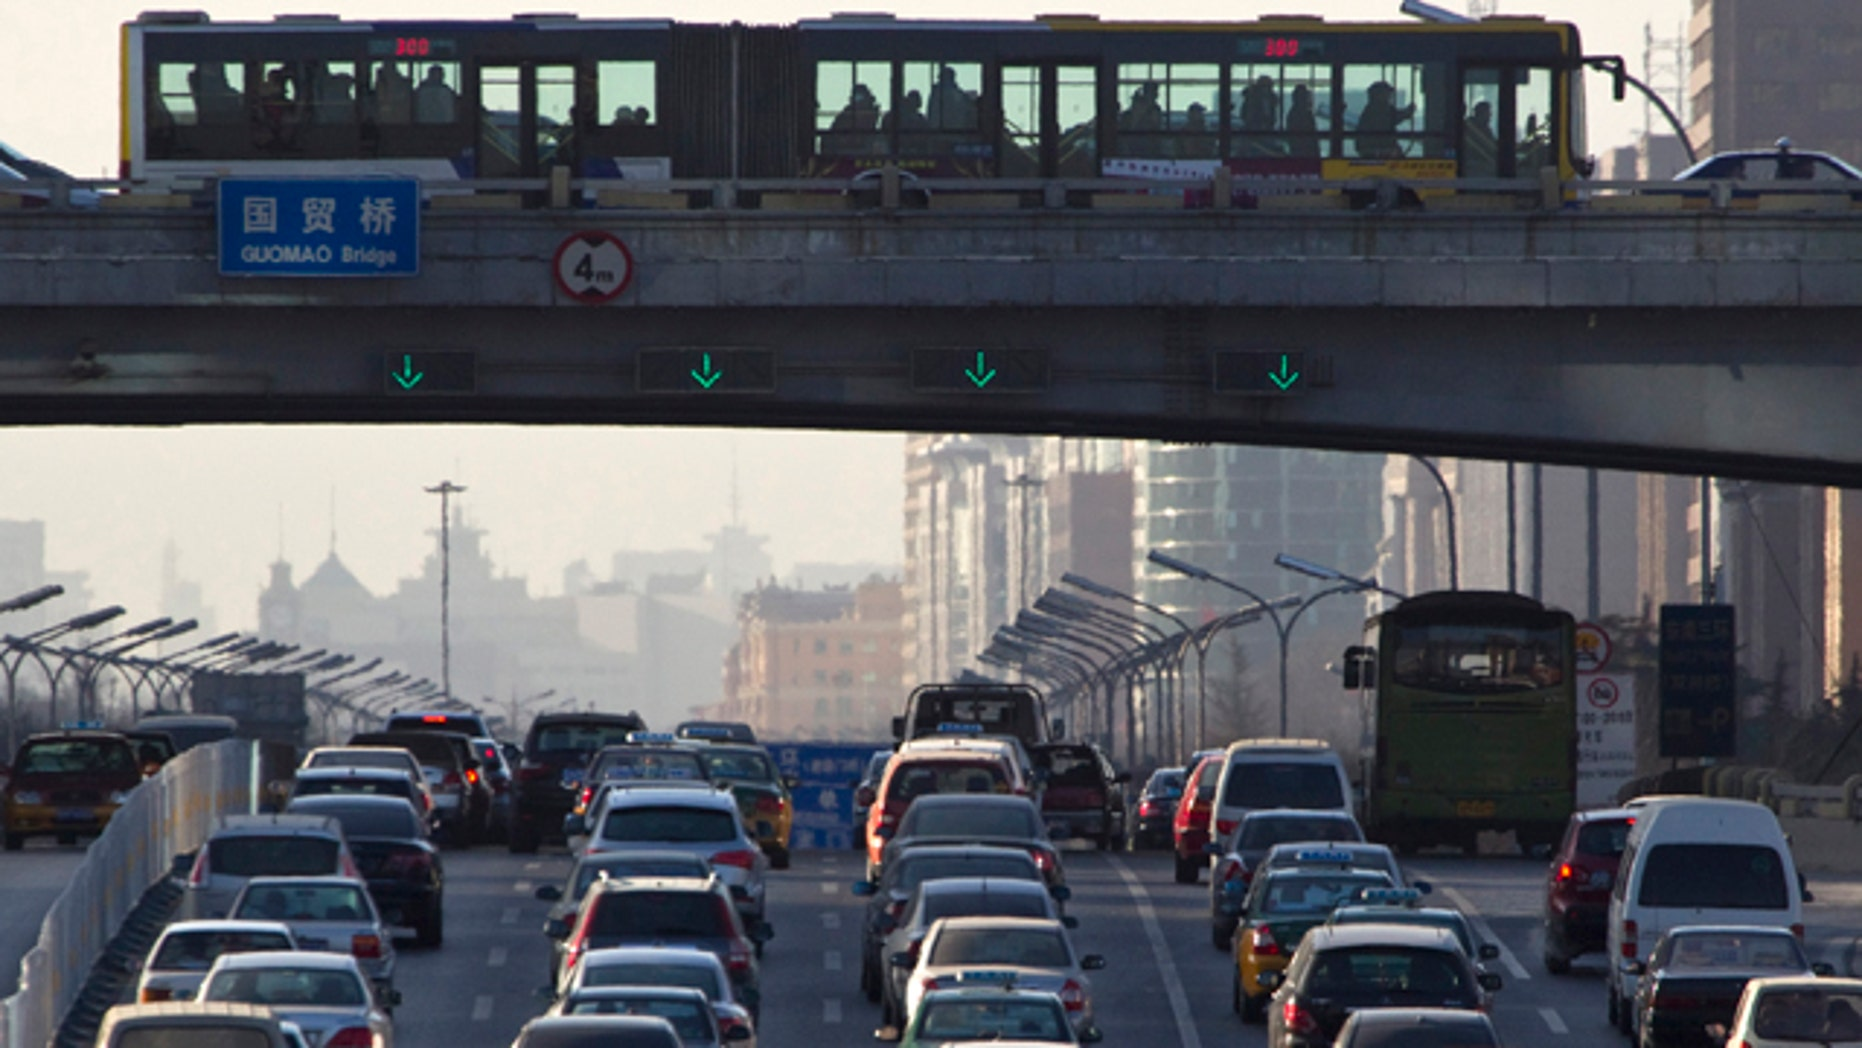 Dec. 23, 2010: Vehicles pack the main roads during the day in central Beijing, China.